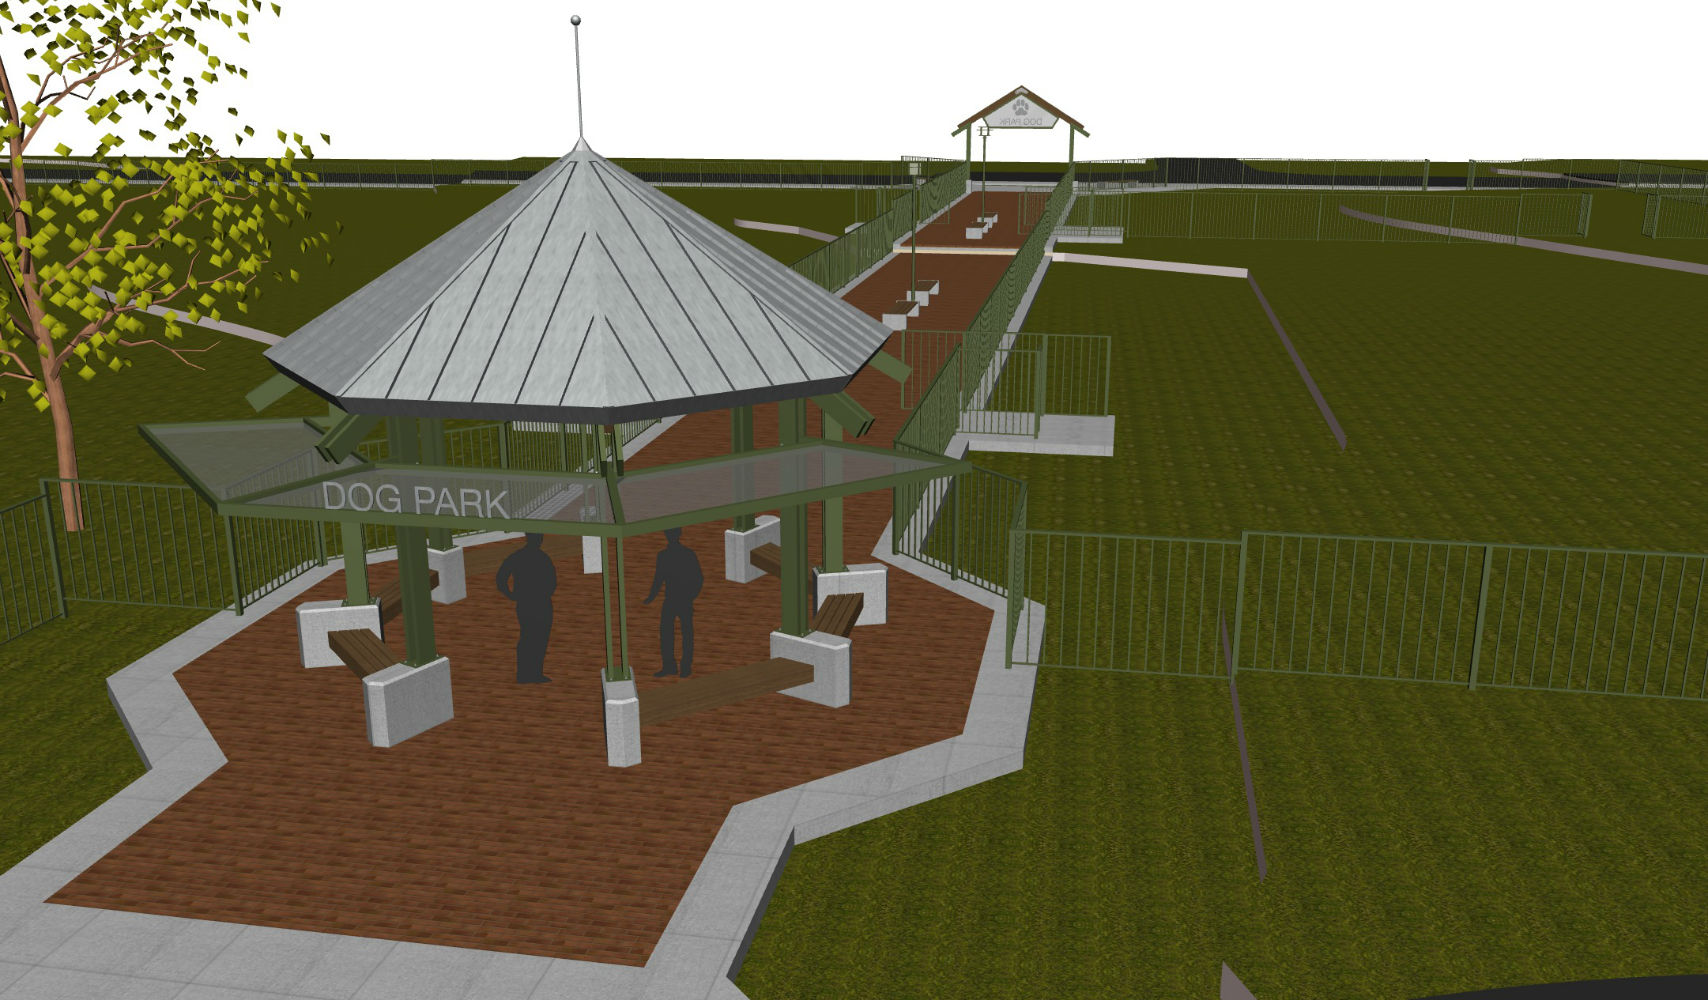 Siloam Springs Dog Park Concept. Image can be downloaded